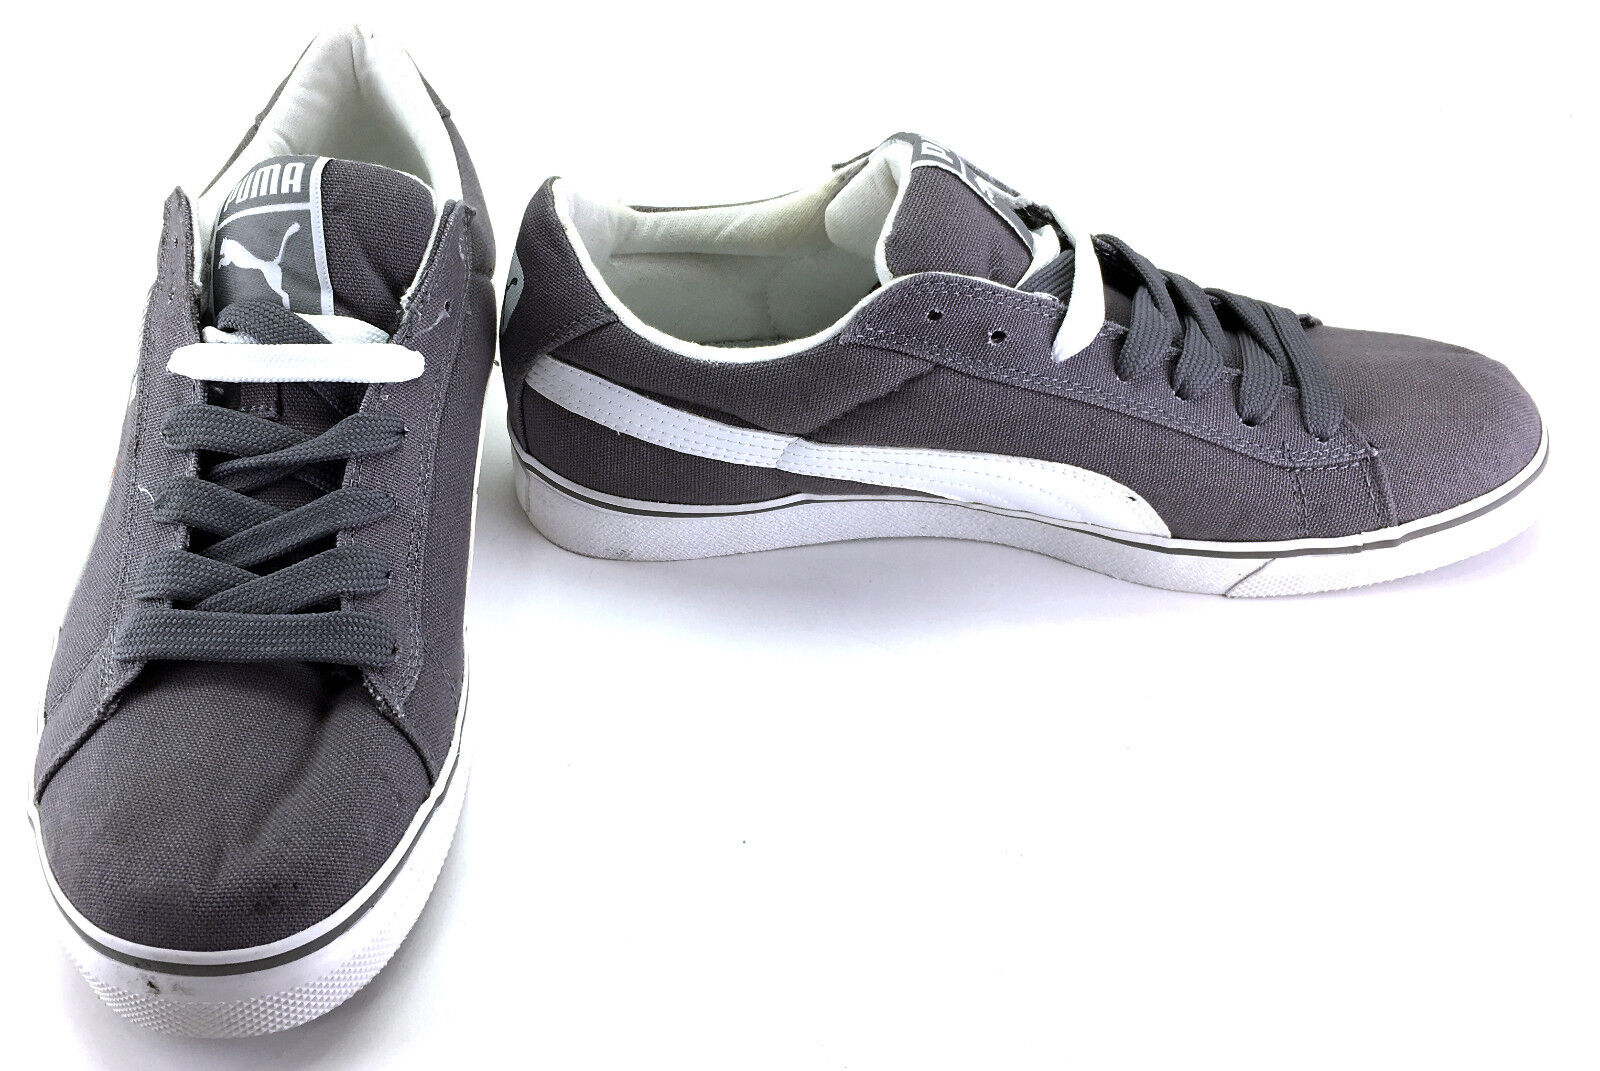 Puma Shoes Classic Vulcanized Canvas Lo Gray/White Sneakers Comfortable Brand discount